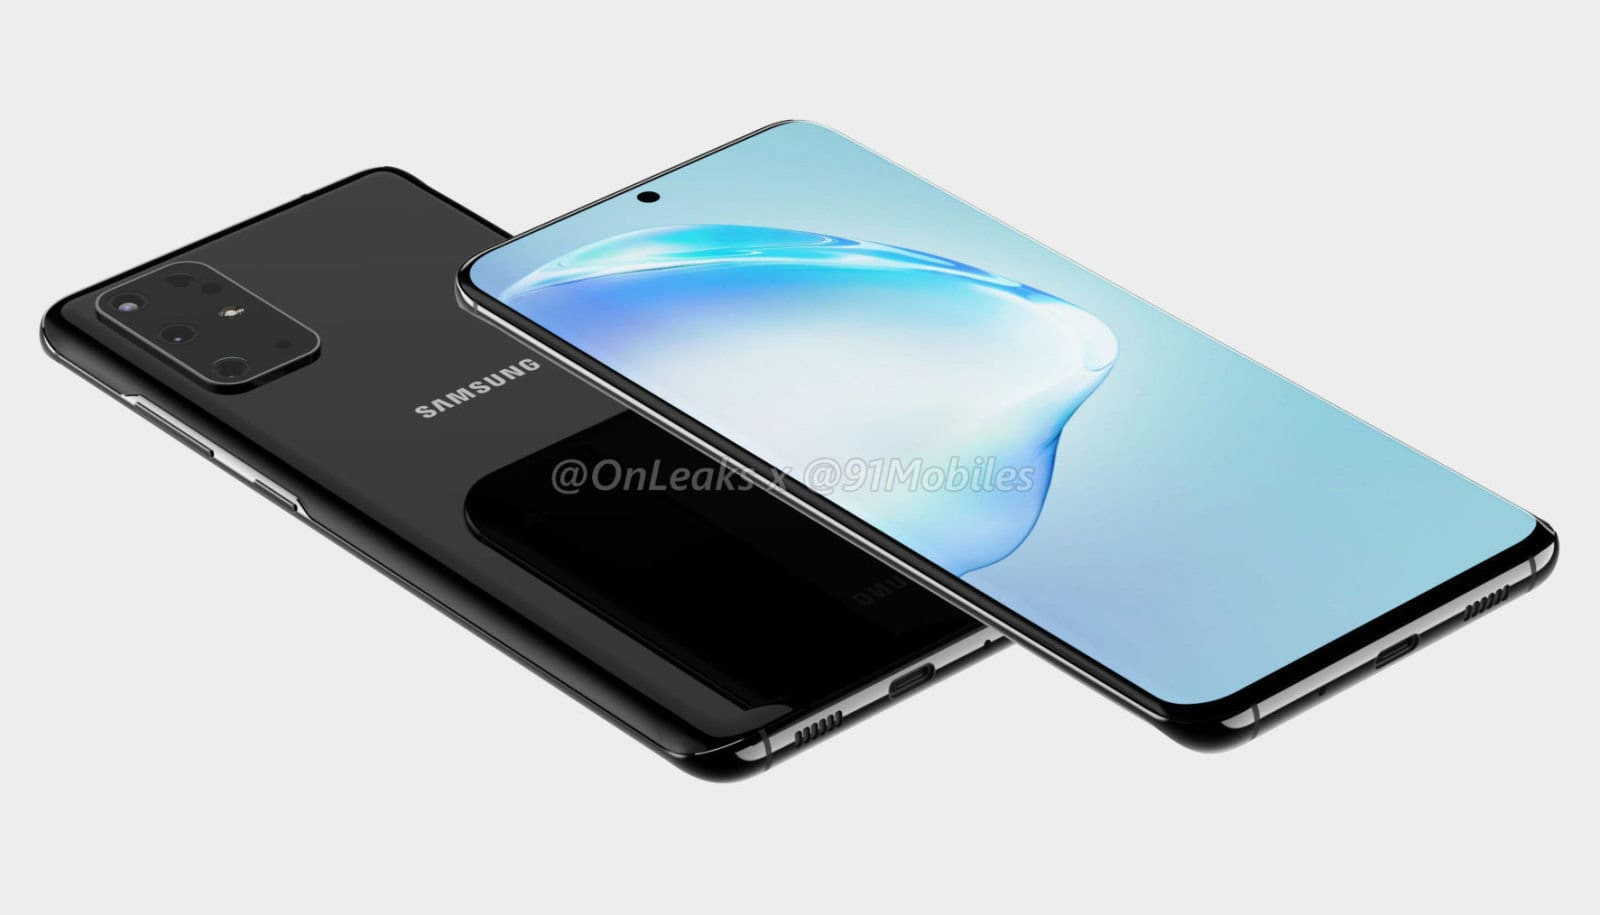 Samsung Galaxy S11 – The Highly Anticipated Upcoming Samsung Phone